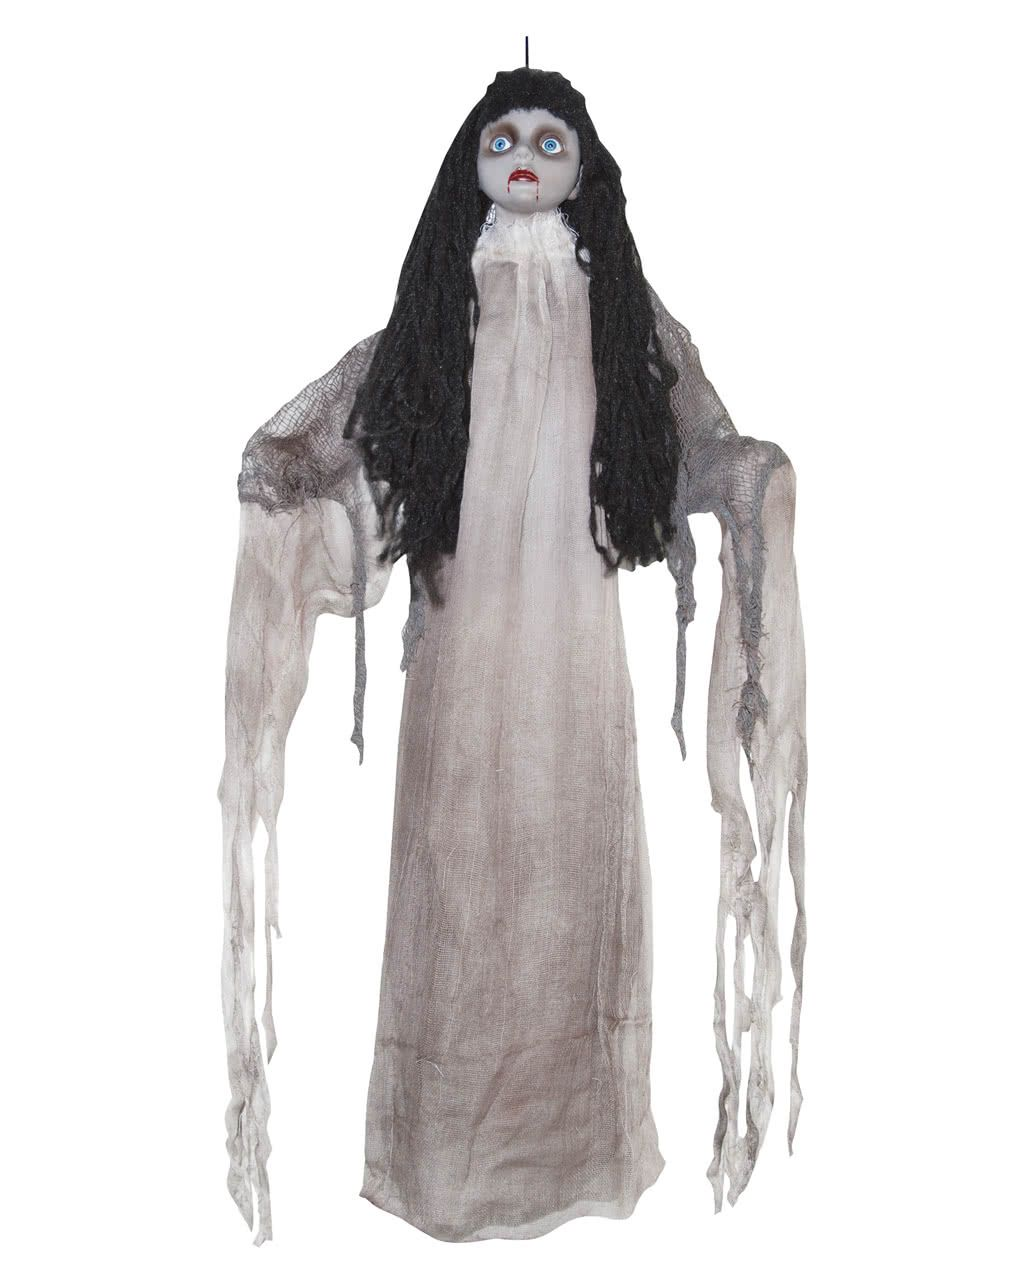 Figuren Shop 24 Graue Ghost Doll Hängefigur 86 Cm In 2018 Halloween Deko Figuren